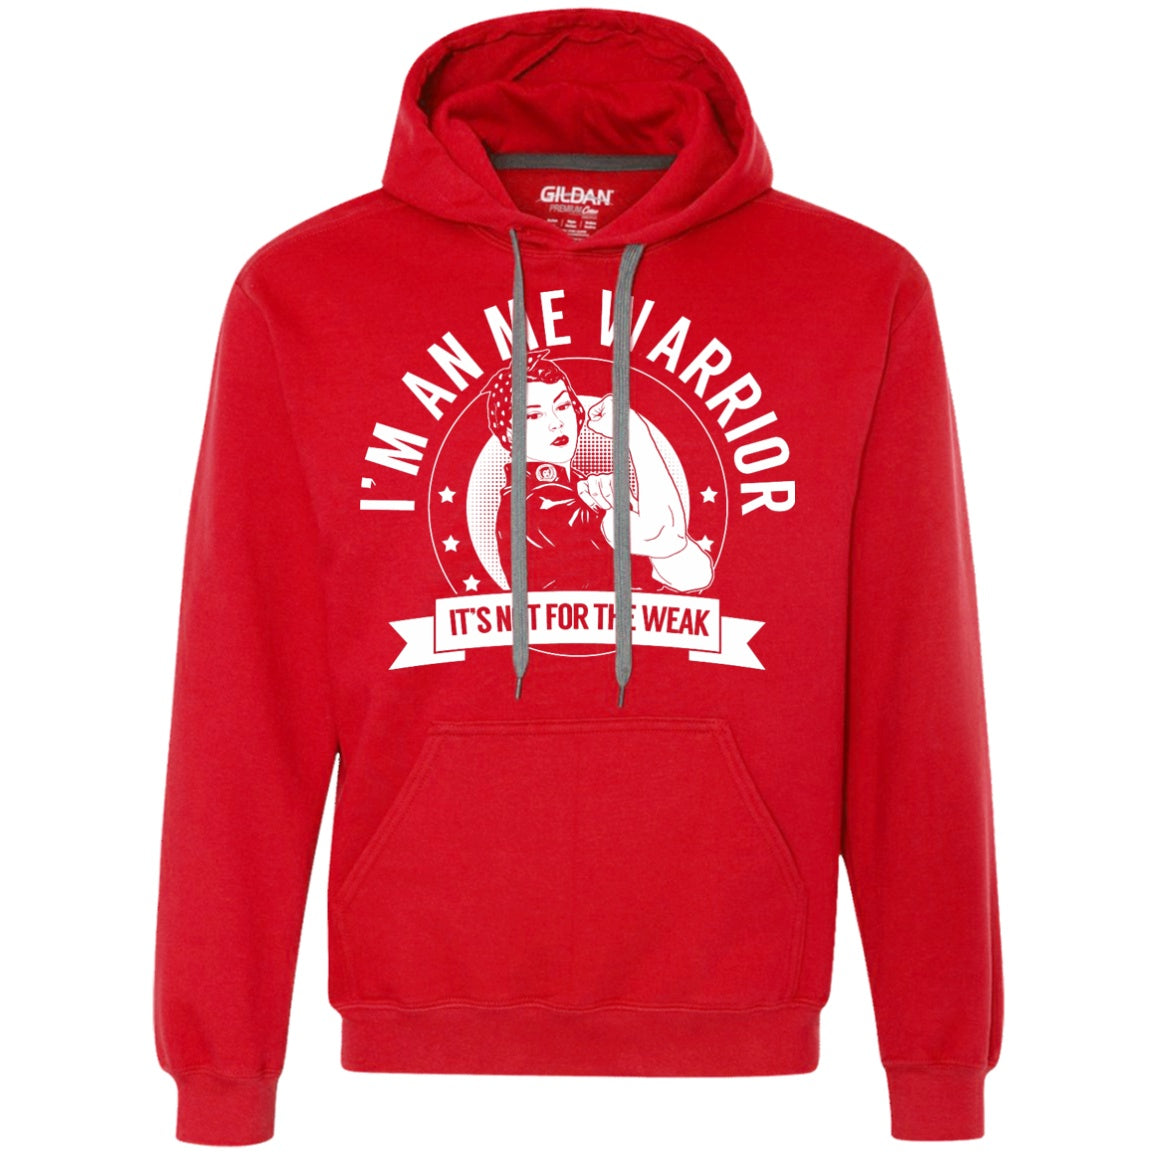 Myalgic Encephalomyelitis - ME Warrior Not for the Weak Pullover Hoodie - The Unchargeables